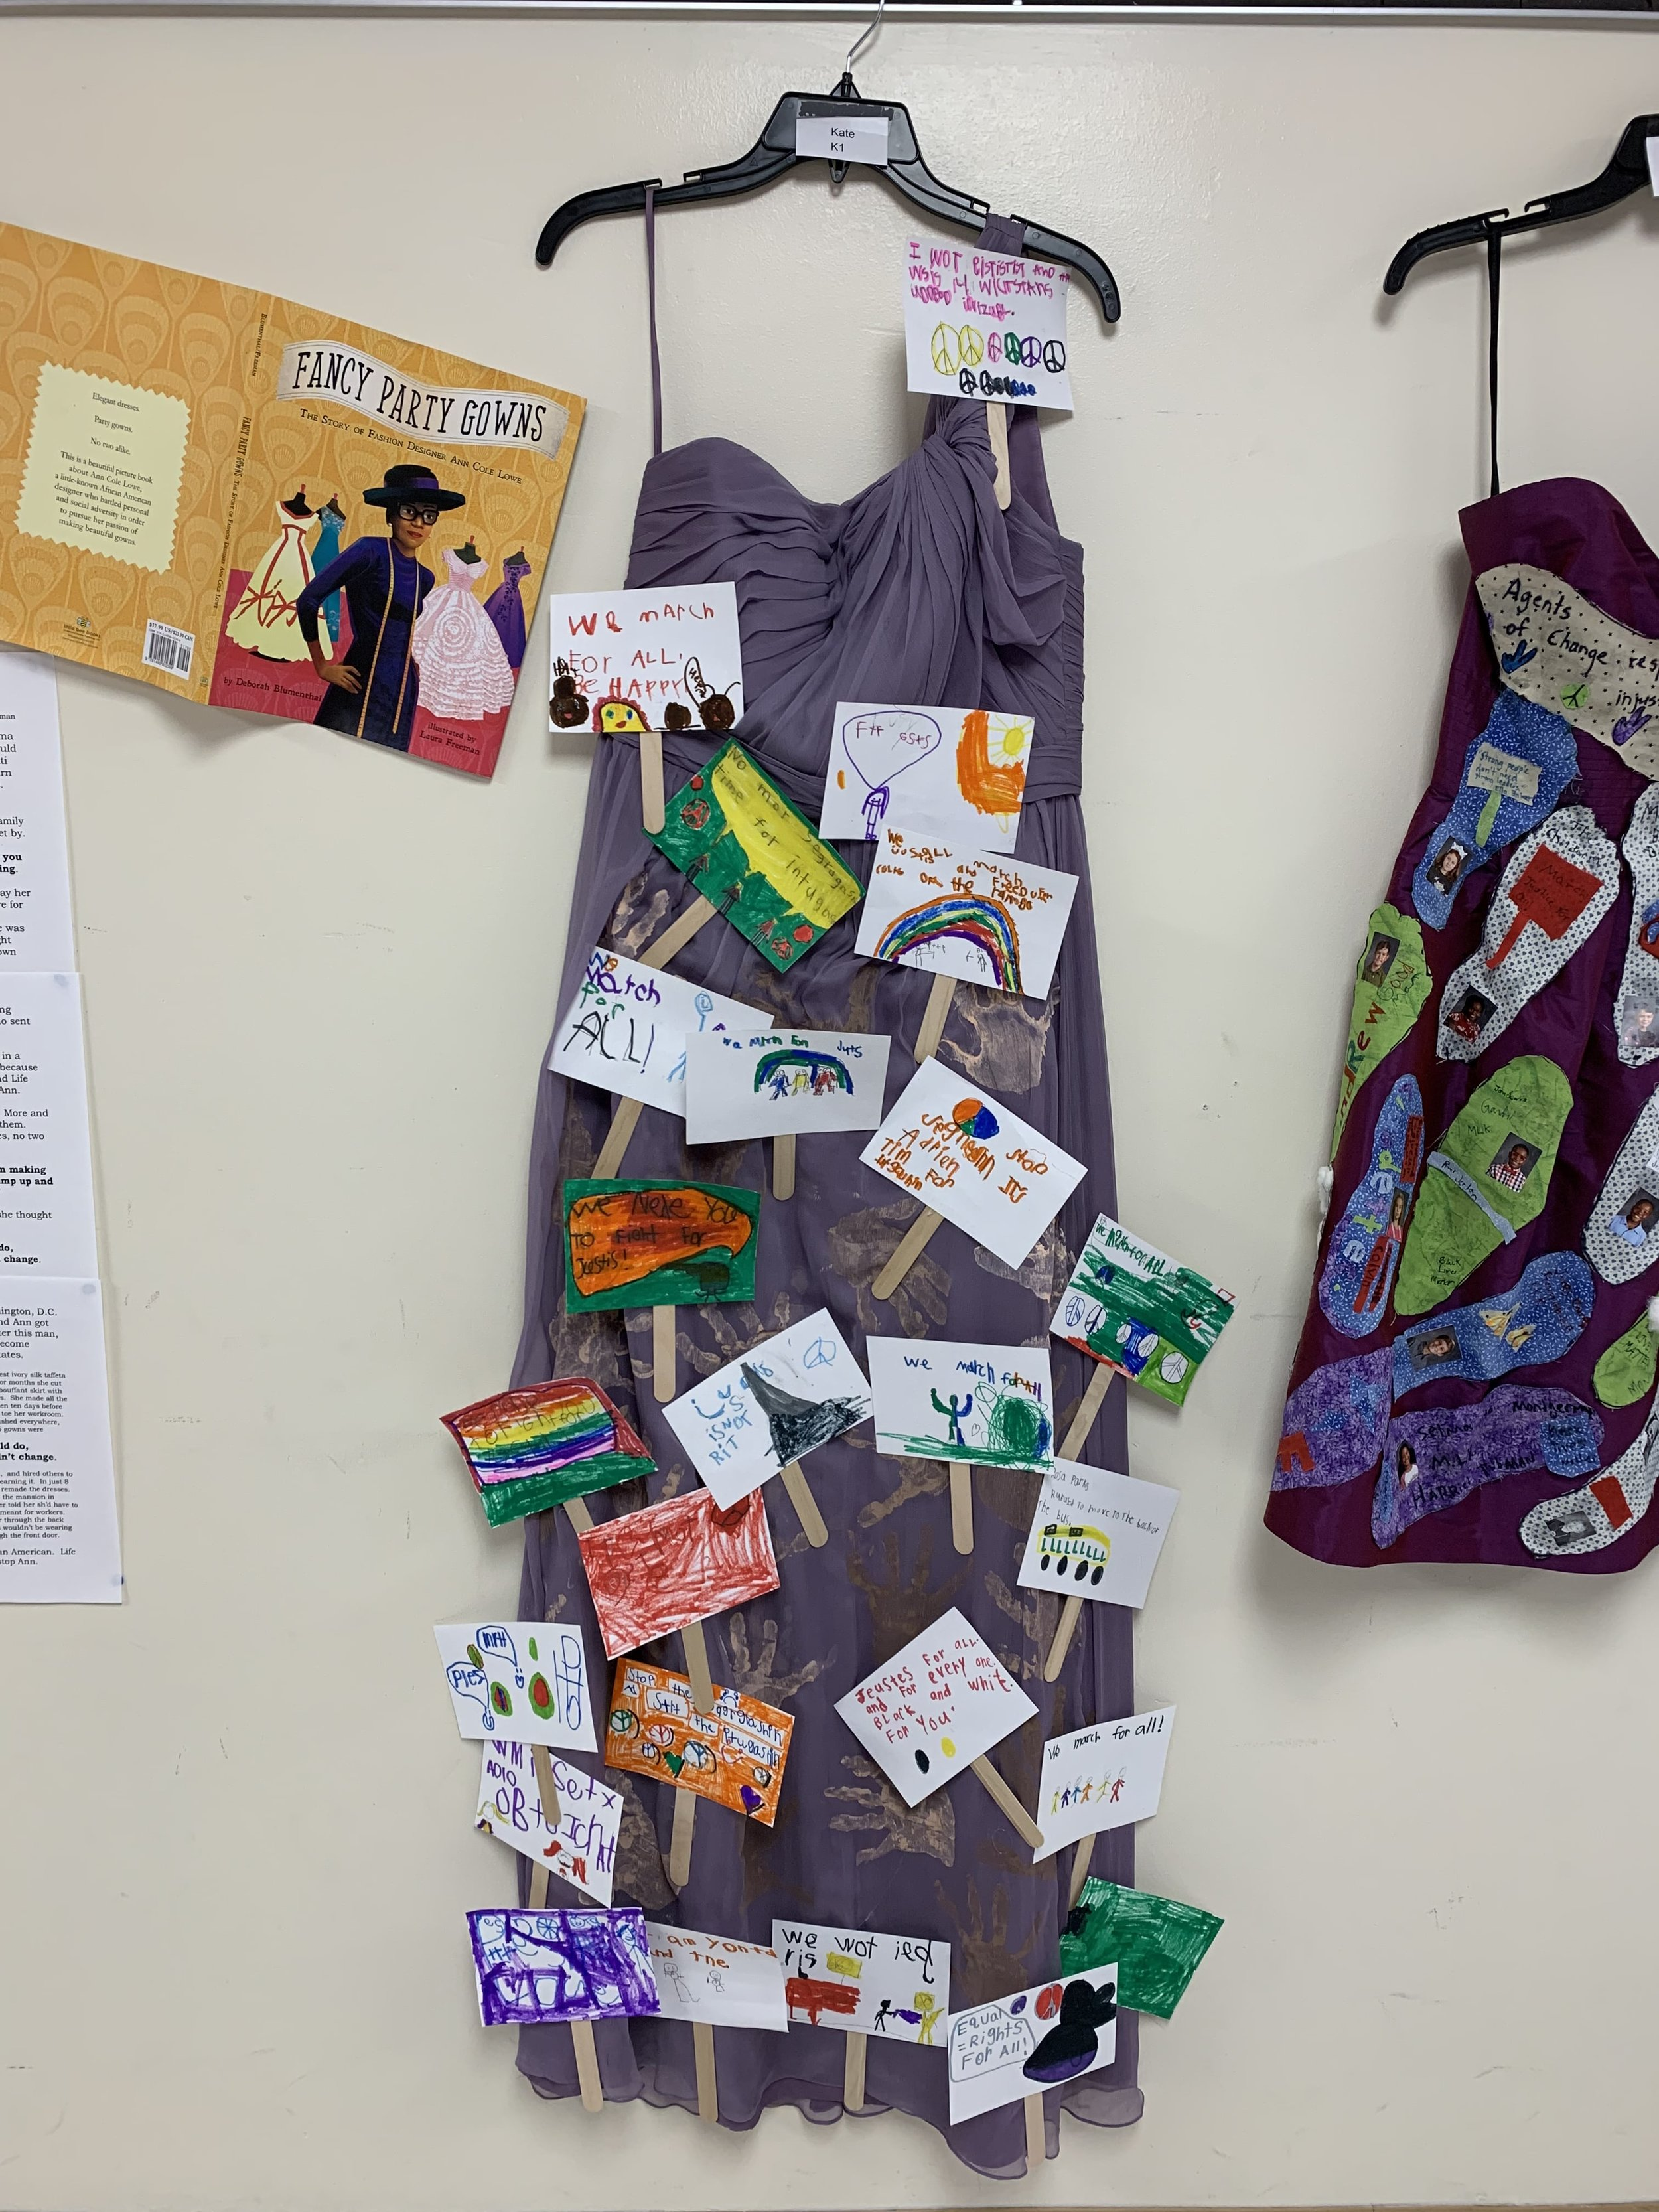 Haute couture unit by Dramatic Impact uses dresses at Indianola Elementary School